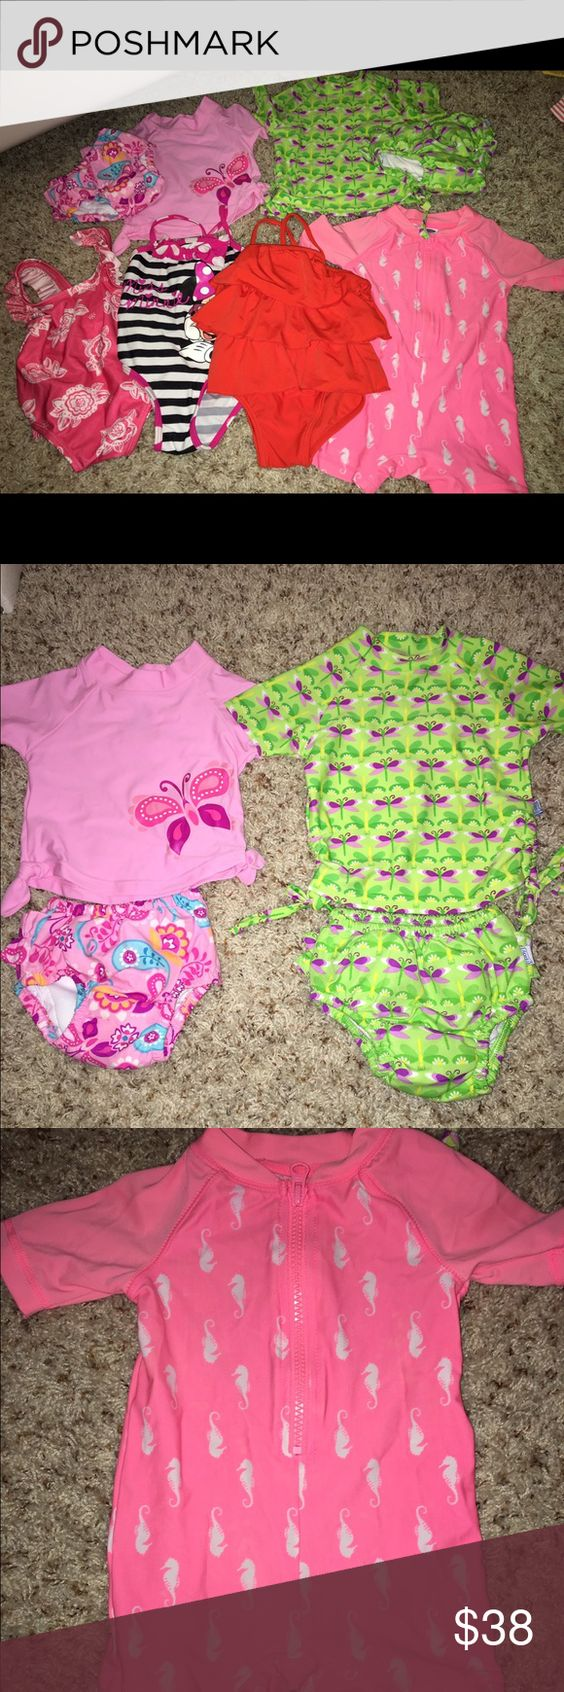 Baby girl lot of swimsuits Two sets of swimsuits including two UV shirts with diaper bottom cover UV spf 50 . Three one piece swim suits, 1 body suit swimsuit and 1 cover up towel Swim One Piece